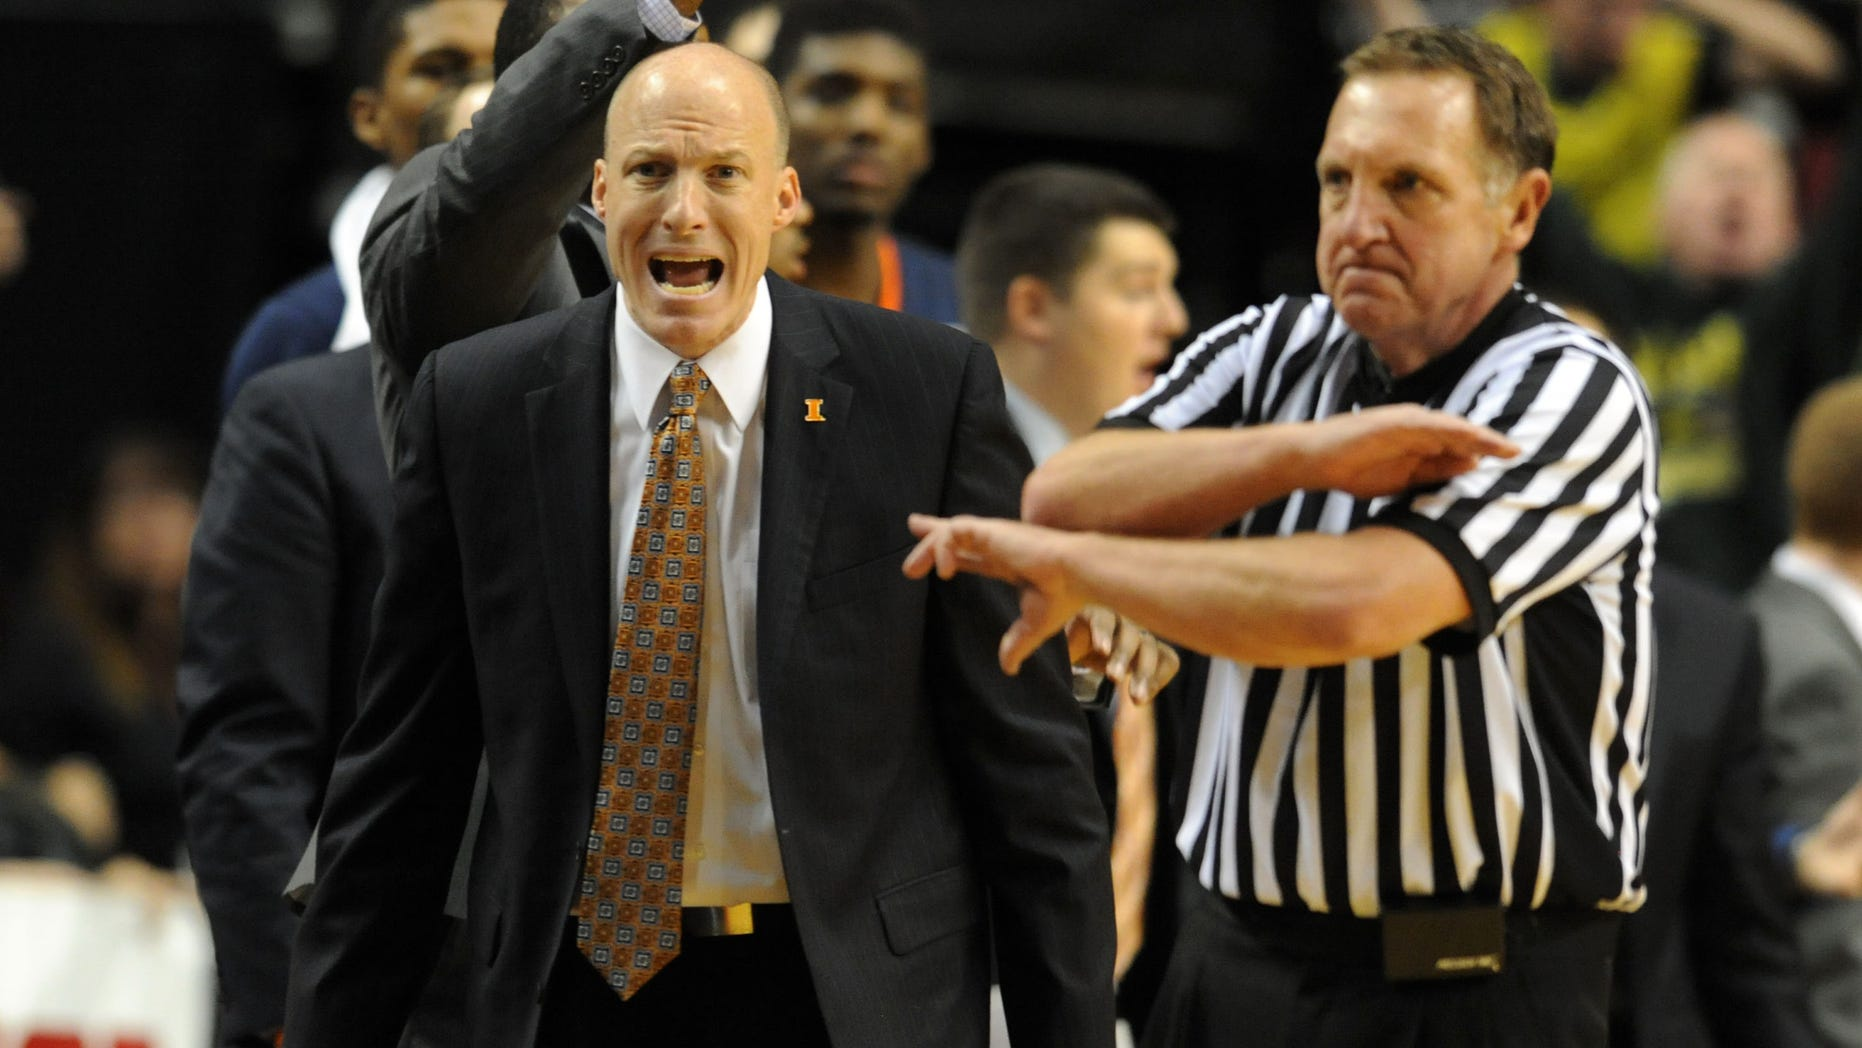 Illinois head coach John Groce, left, yells at an official during the second half of an NCAA college basketball game against the Oregon in Portland, Or., Saturday, Dec. 14, 2013. Oregon won 71-64. (AP Photo/Steve Dykes)